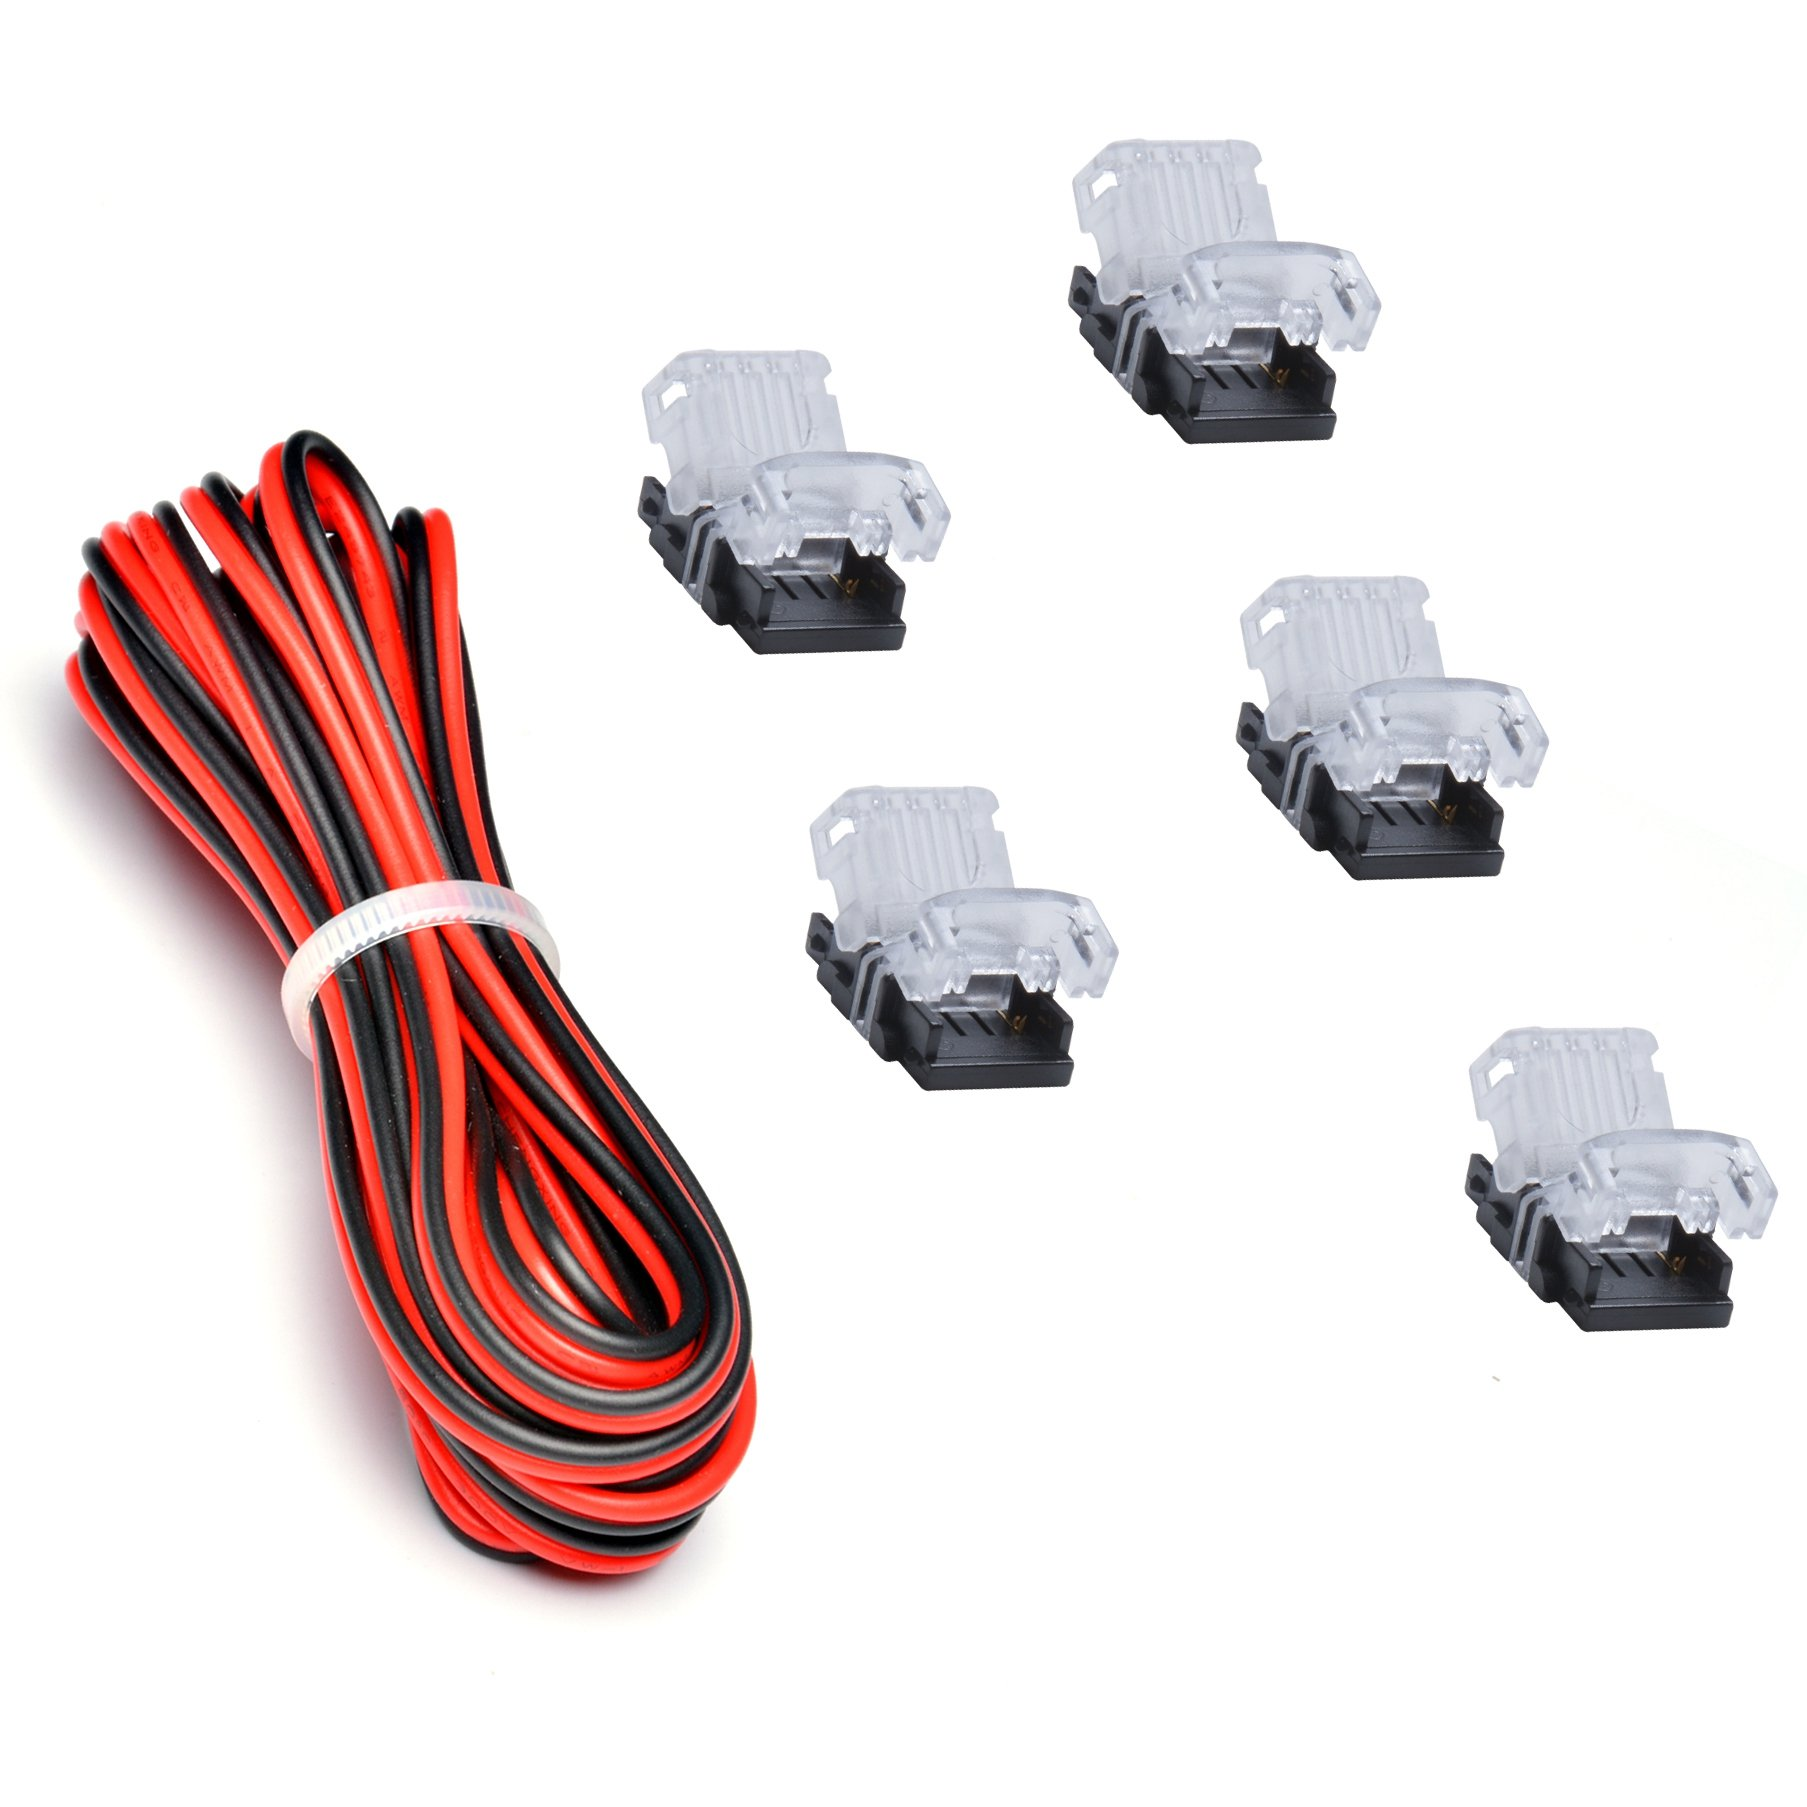 High Density LED Strip Connector(5 PCS) with 20 Gauge Wire(9.8 Feet) for 10mm Single Color Strip Light 2 Pin, Best for 240 SMDs/M, 2835,2216,5050 Workable, NON-WATERPROOF